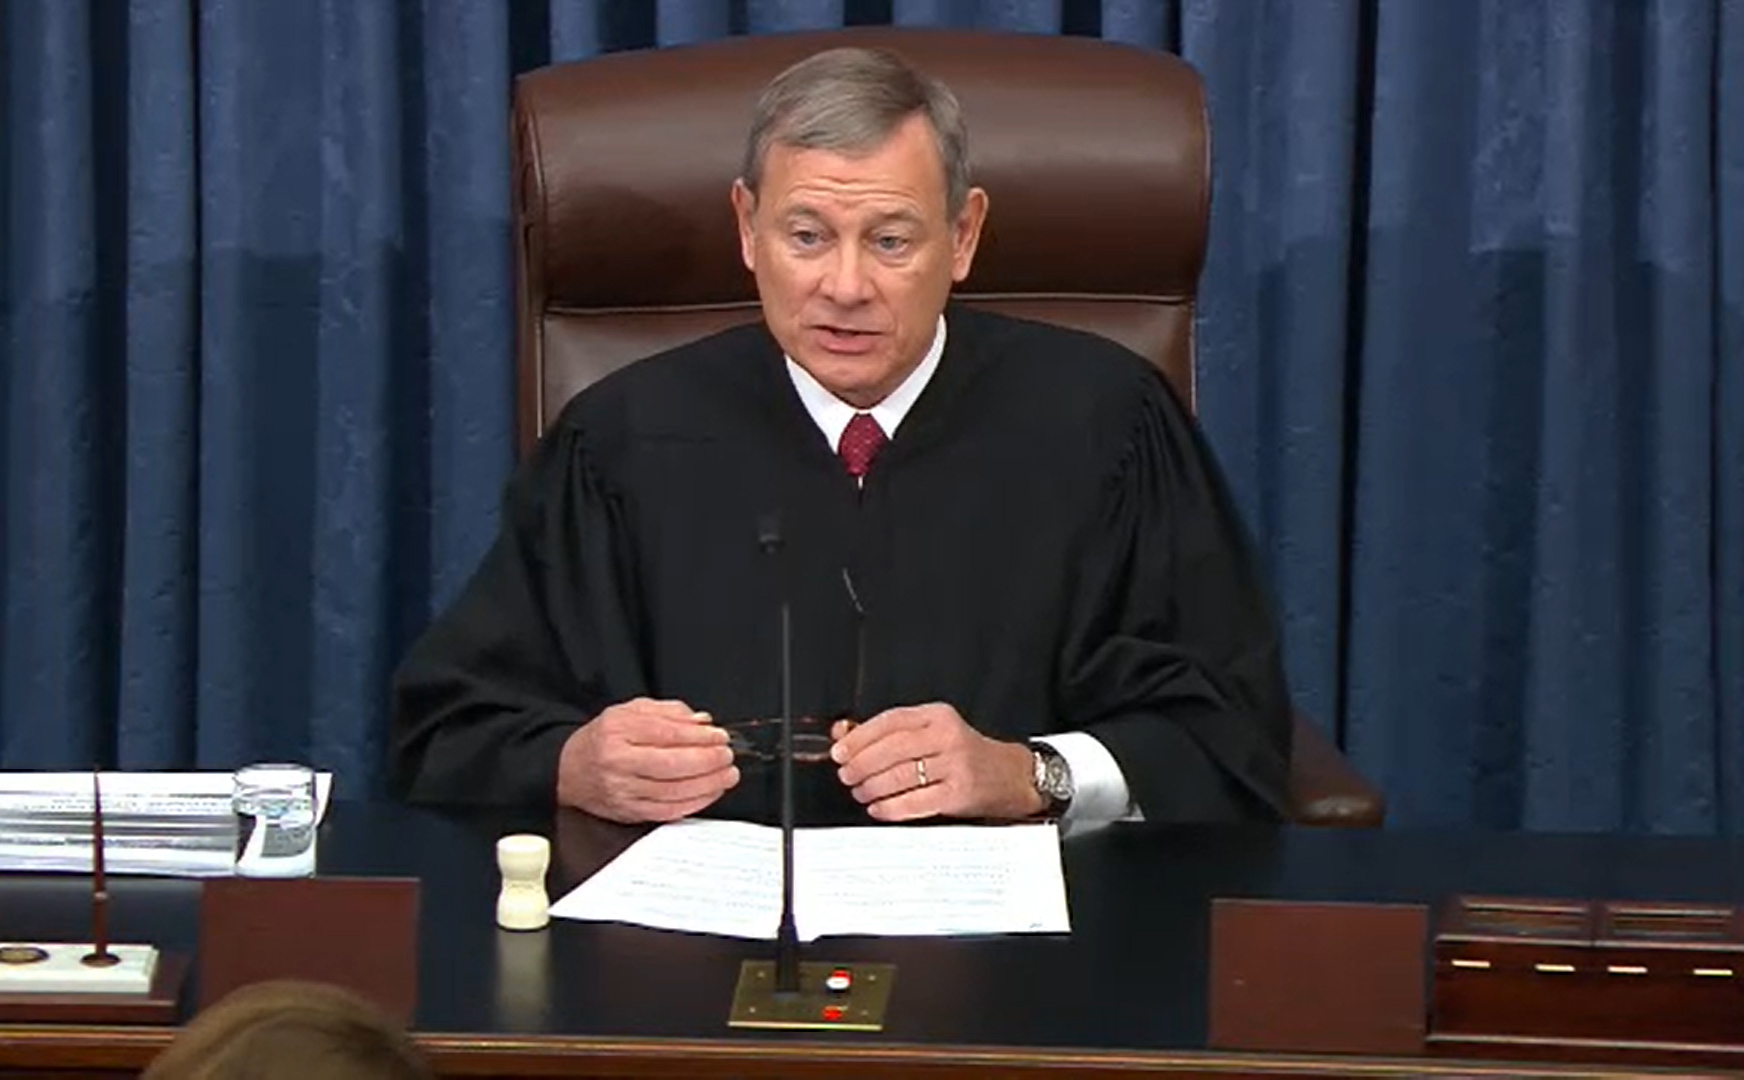 Supreme Court Chief Justice John Roberts sitting at a desk wearing his judicial robe.